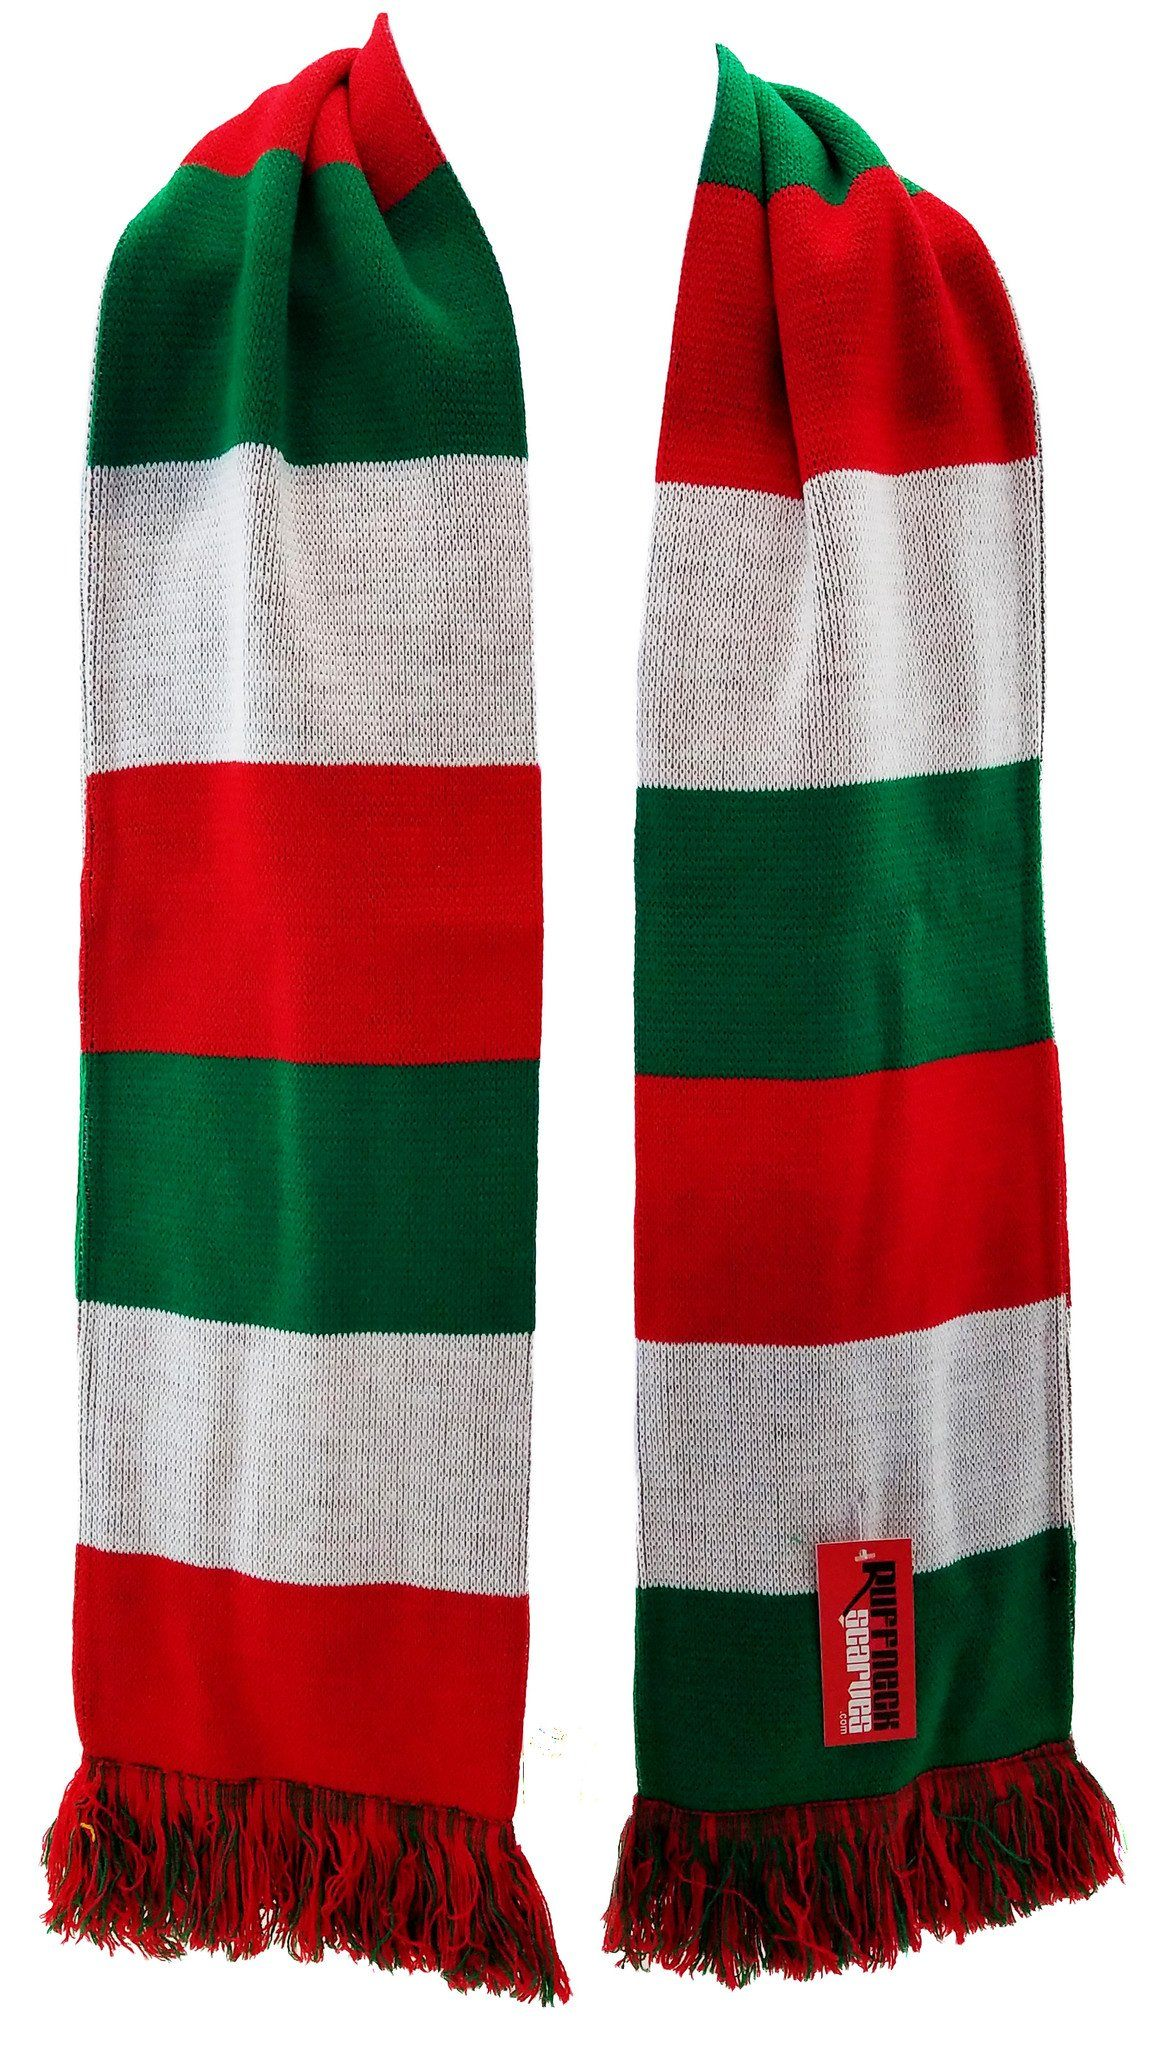 HUNGARY Scarf - Ruffneck Scarves - 3